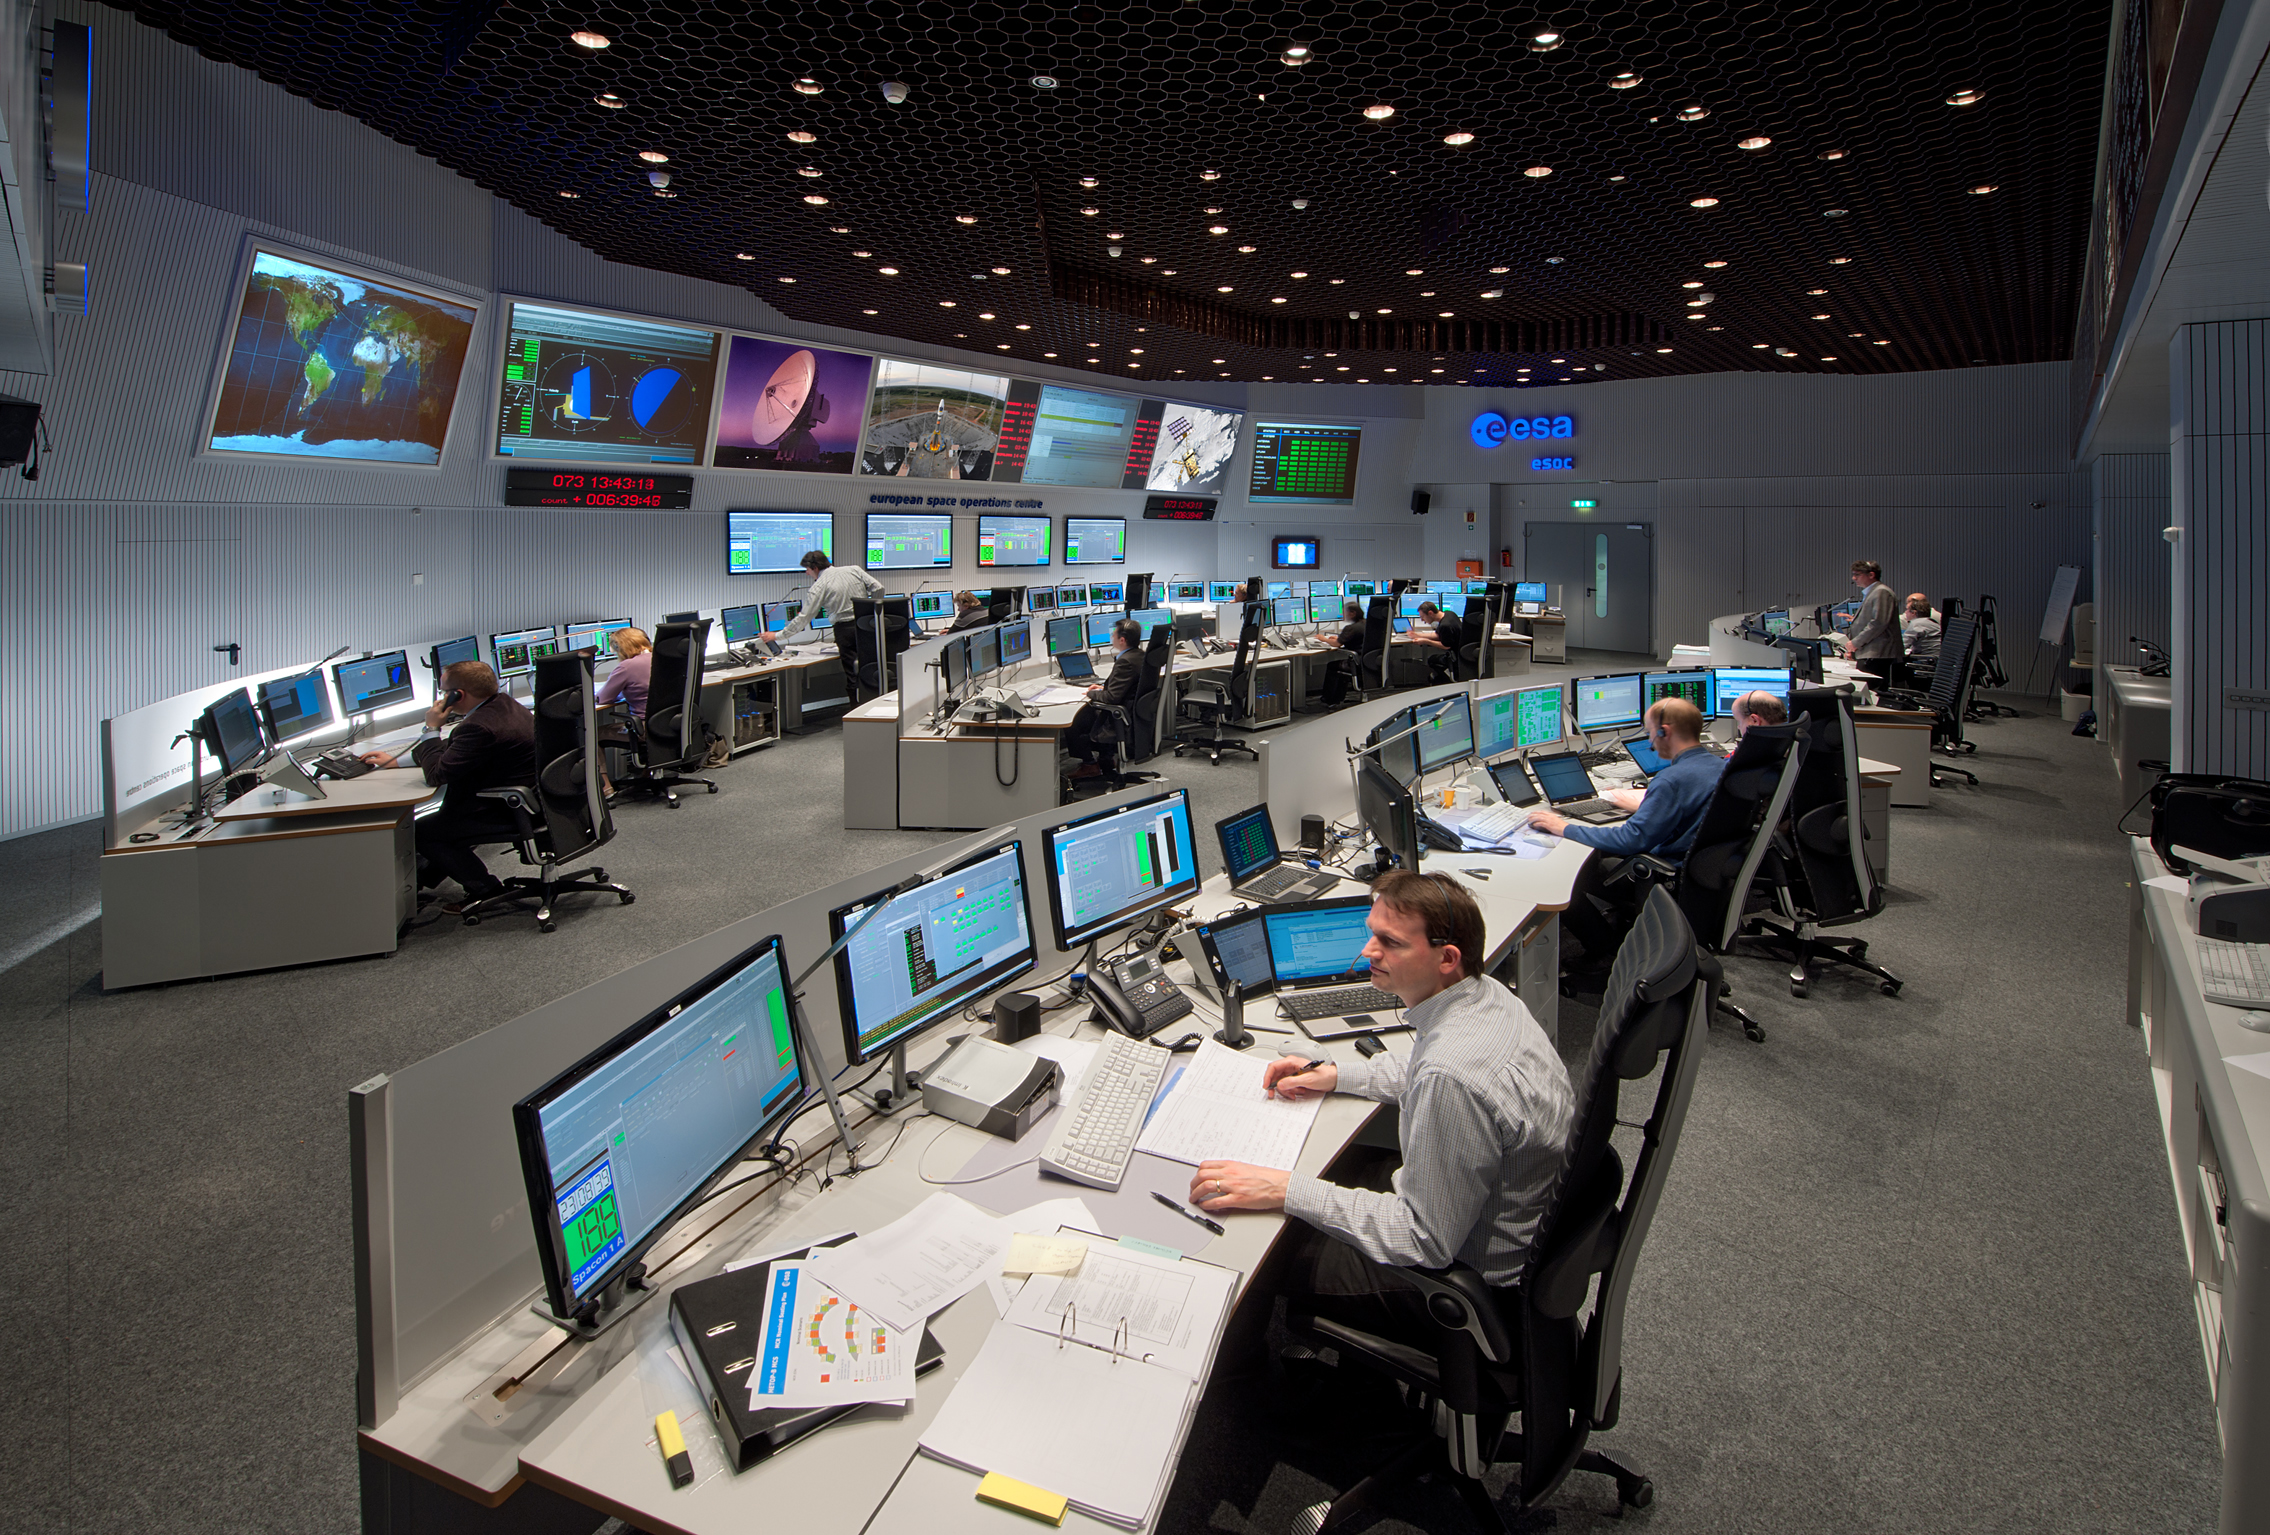 The fourth and final Go/No Go decision point comes after confirmation of a satisfactory pre-delivery maneuver by Rosetta.